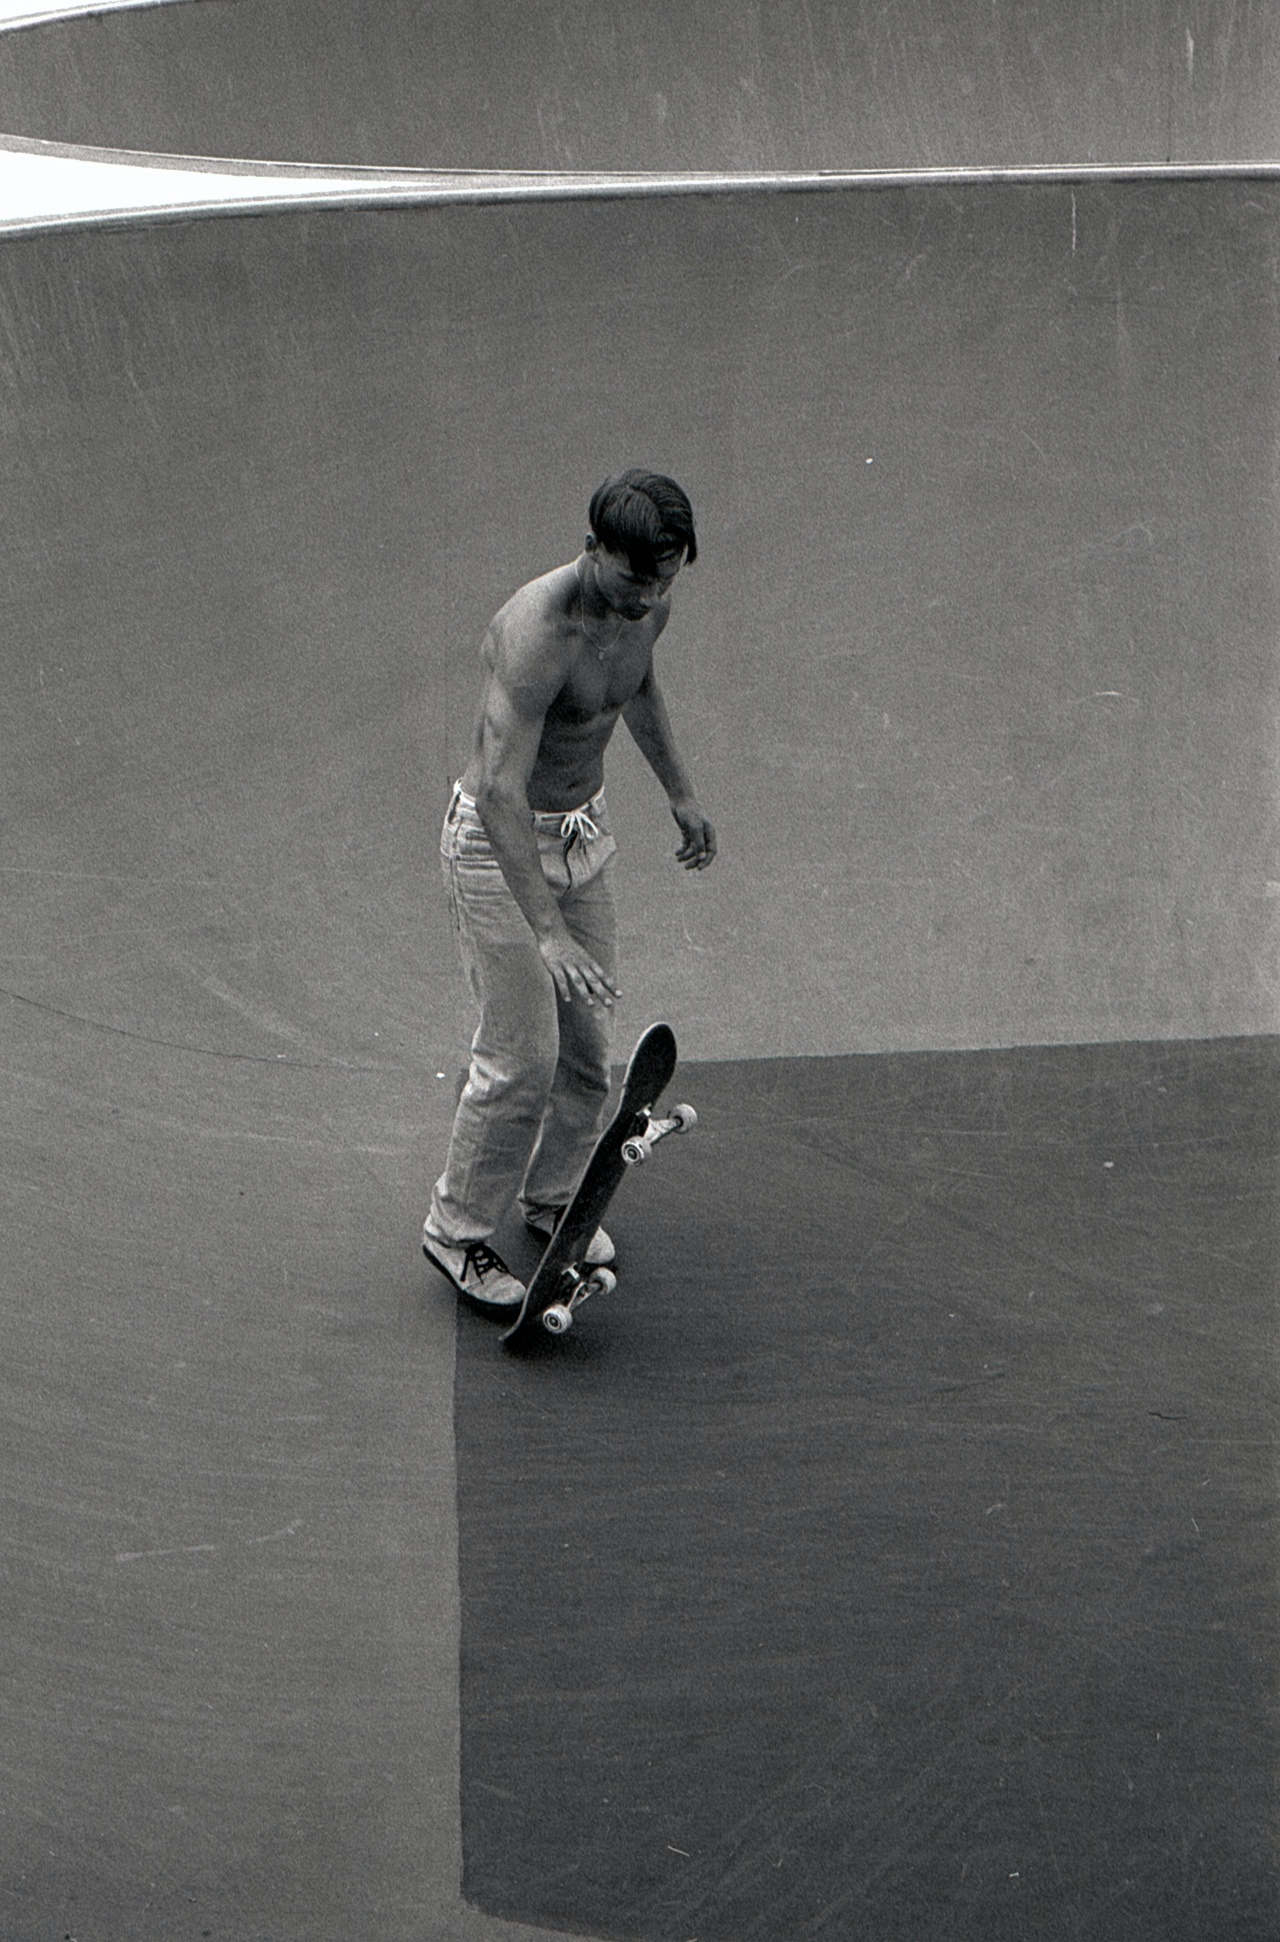 Skating with the boys by Alexis Skating with the boys by Alexis Vanity Teen 虚荣青年 Menswear & new faces magazine